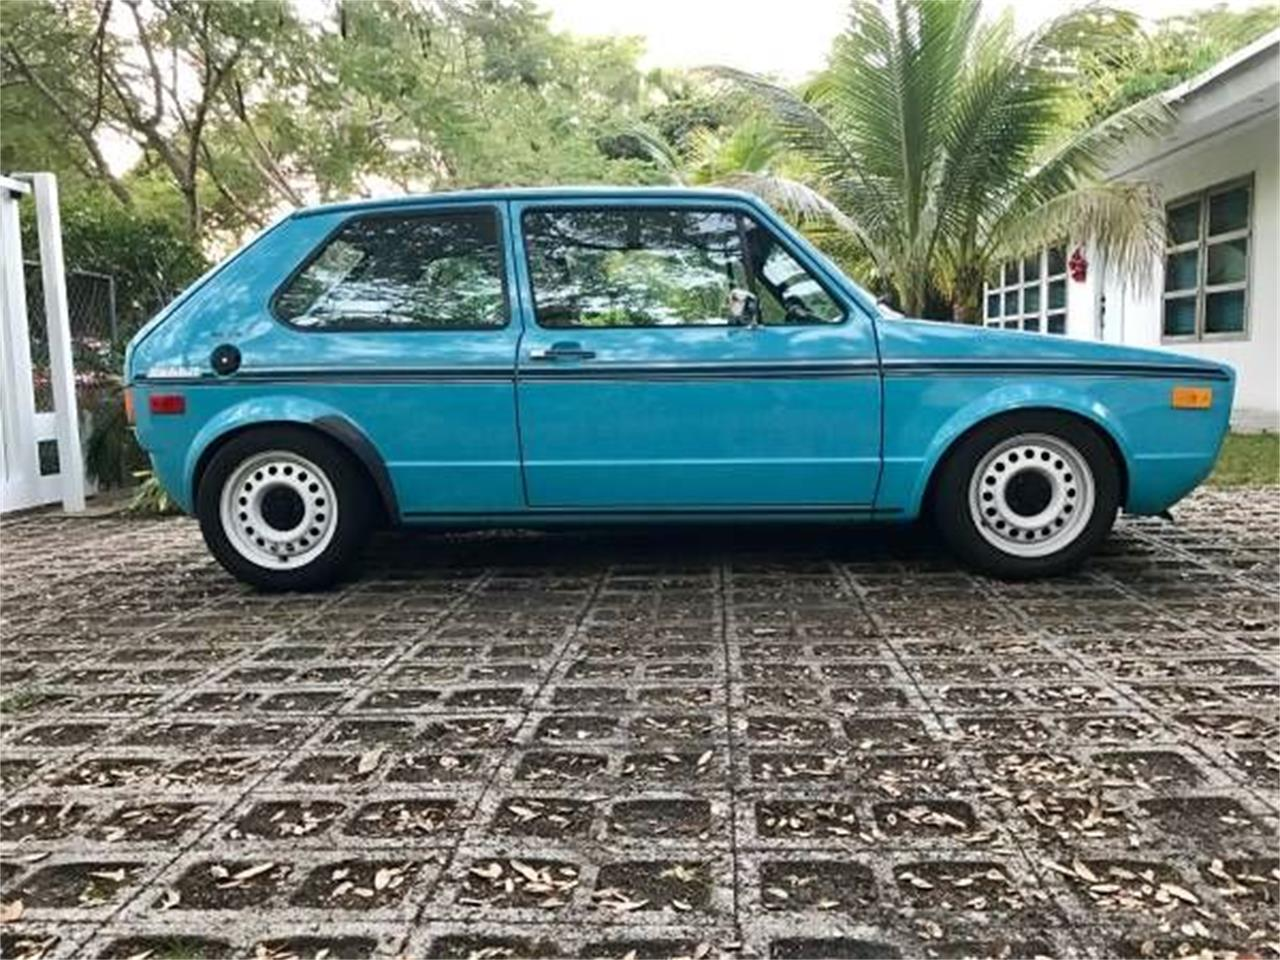 1977 Volkswagen Rabbit For Sale Classiccars Com Cc 1118990